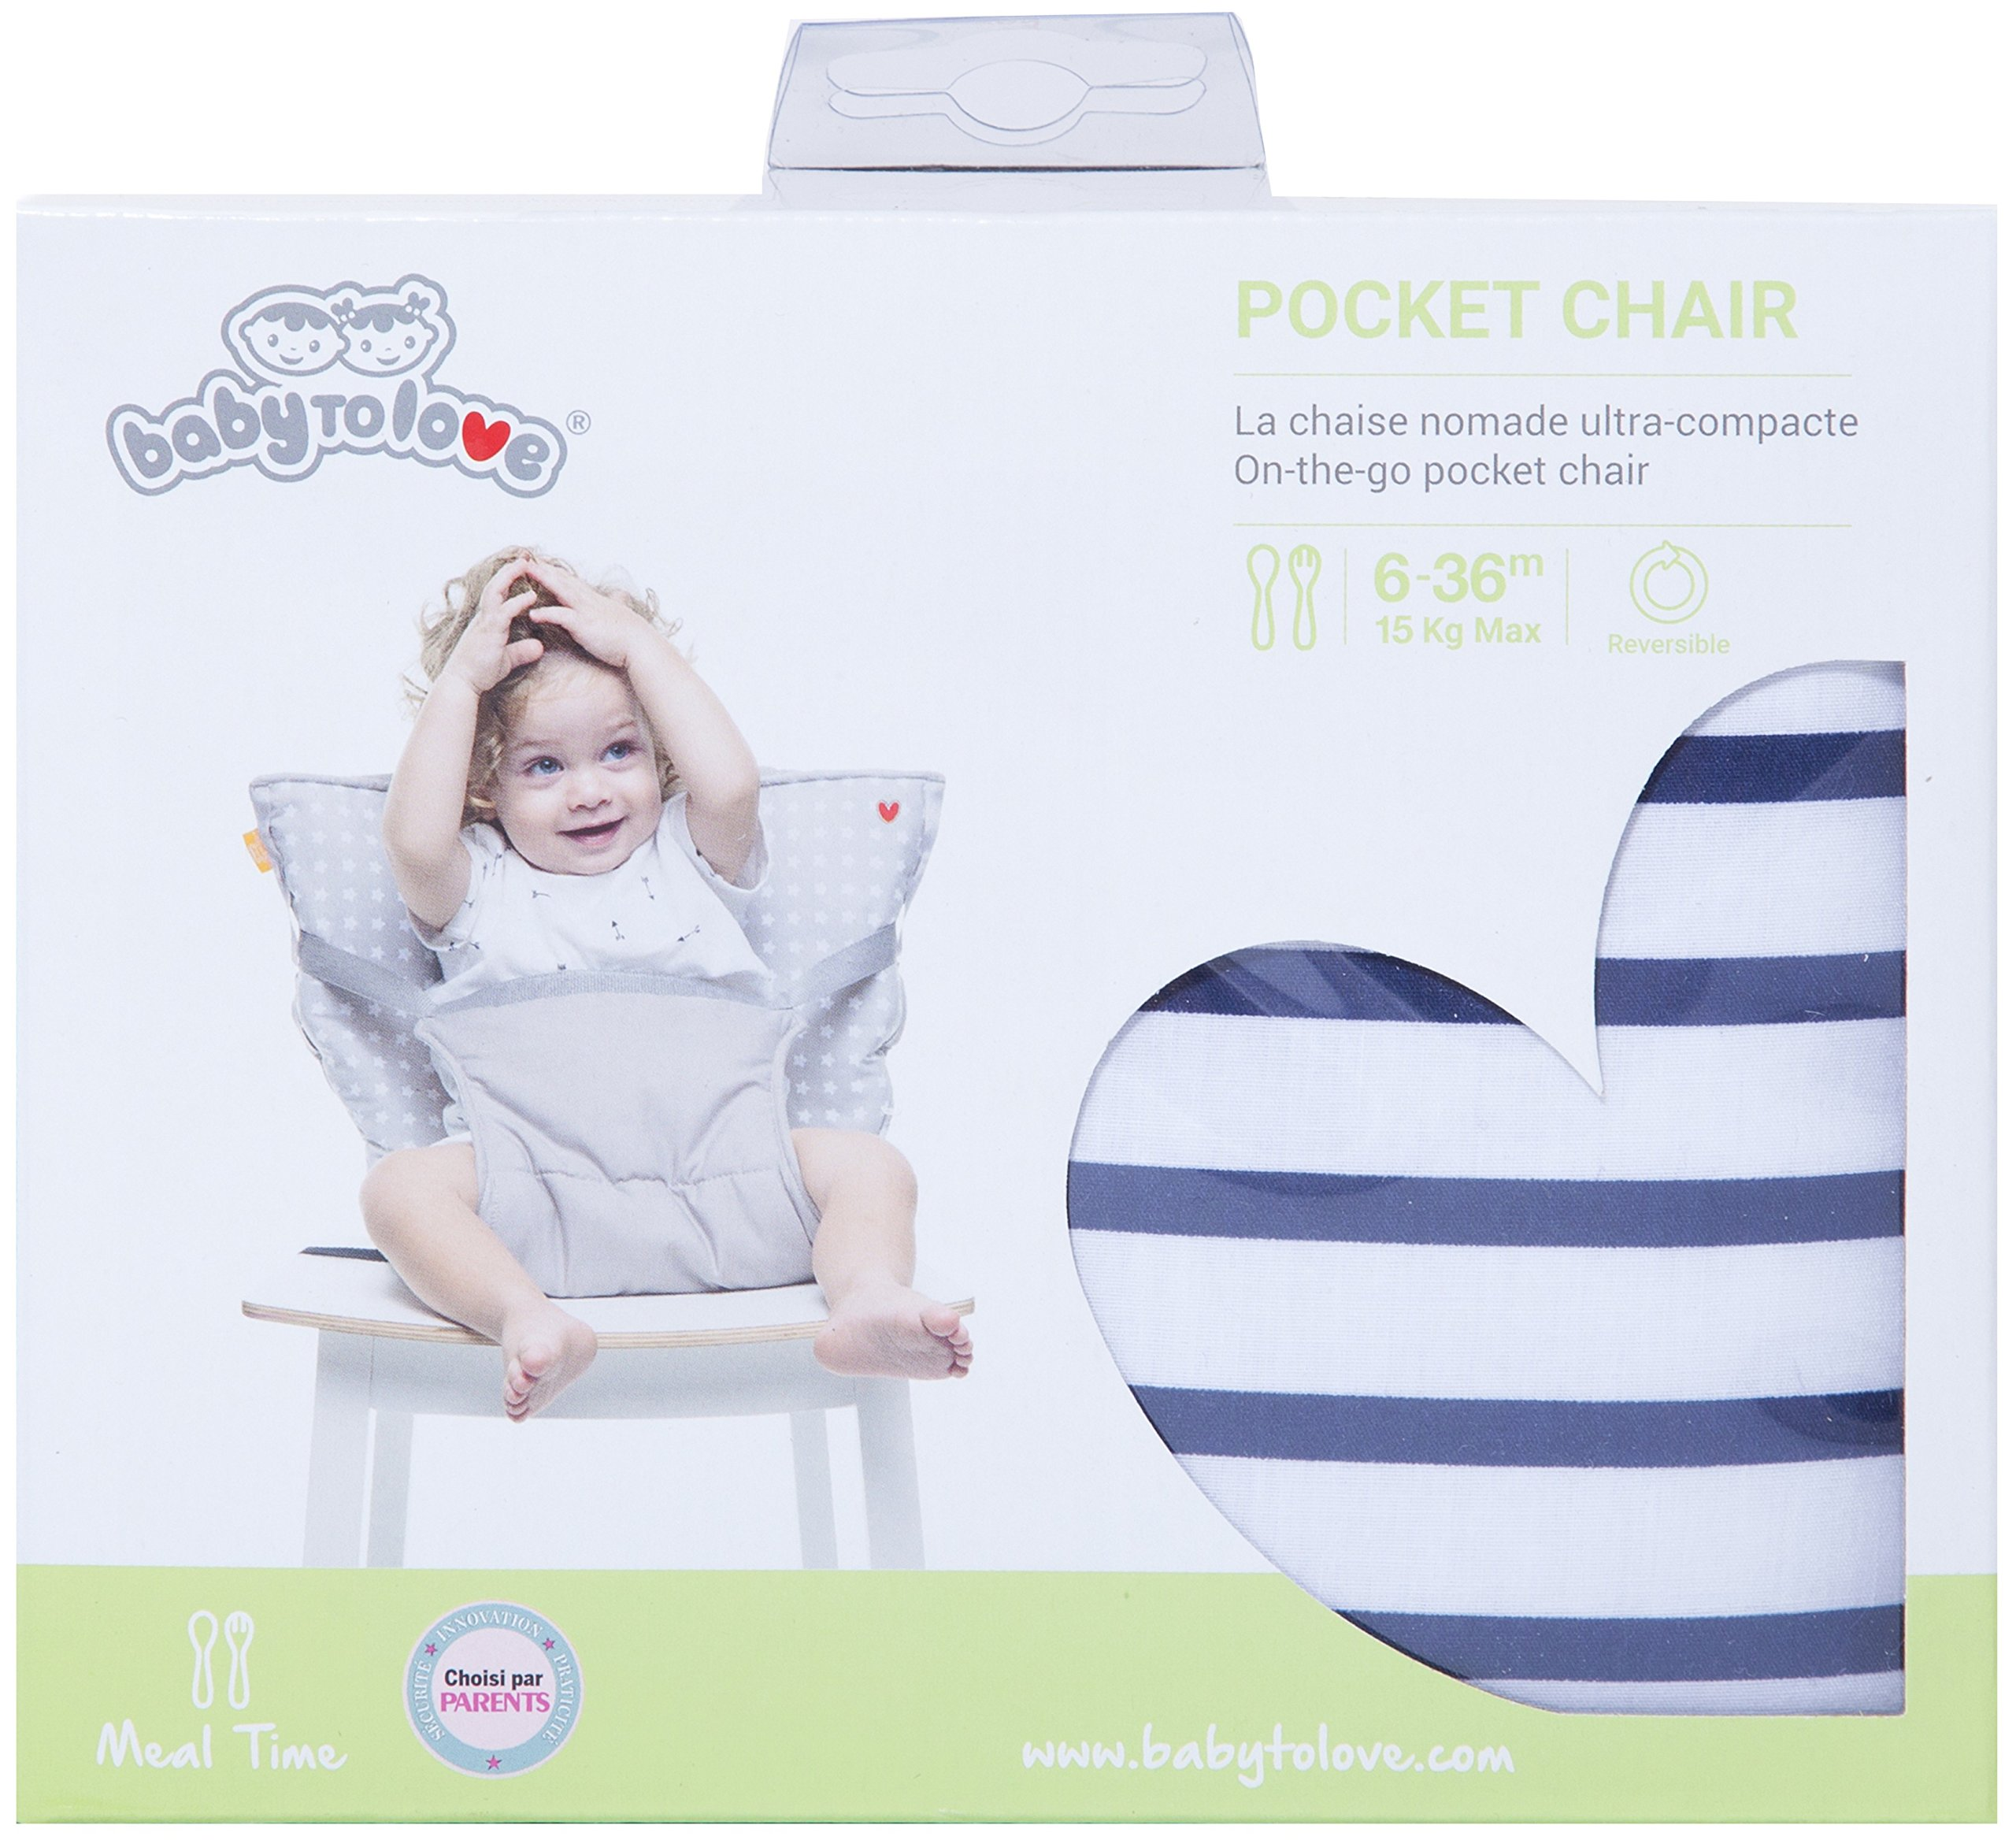 Baby-to-Love Pocket Chair, Toddler Portable High-Chair Seat Cover for Travel (Denim Edition)